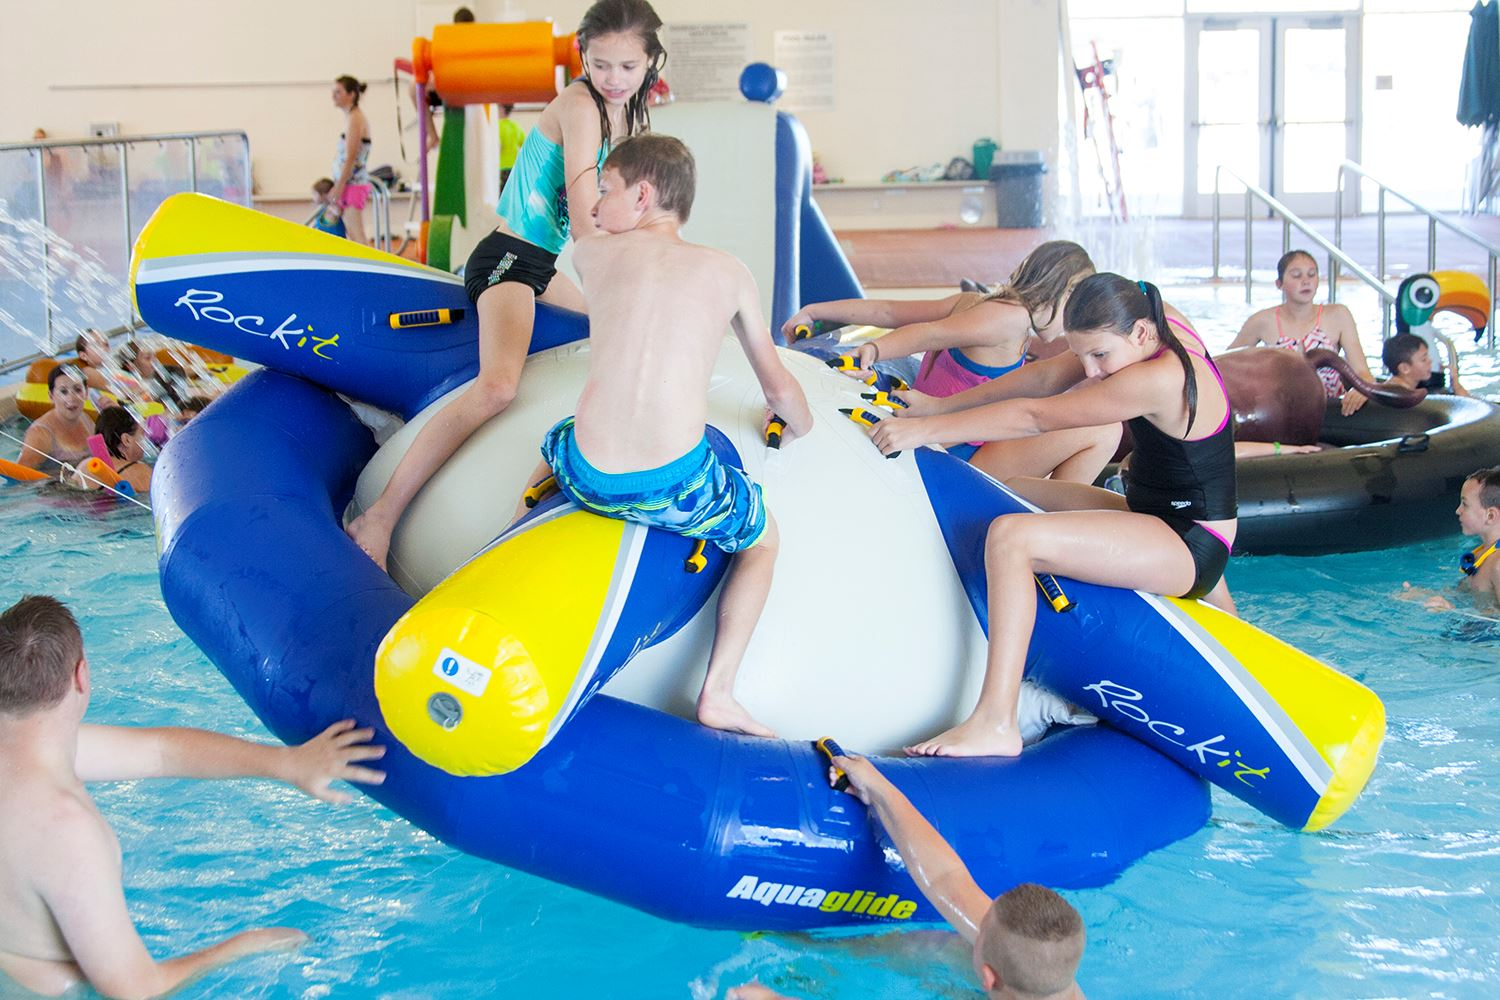 children at pool on inflatable